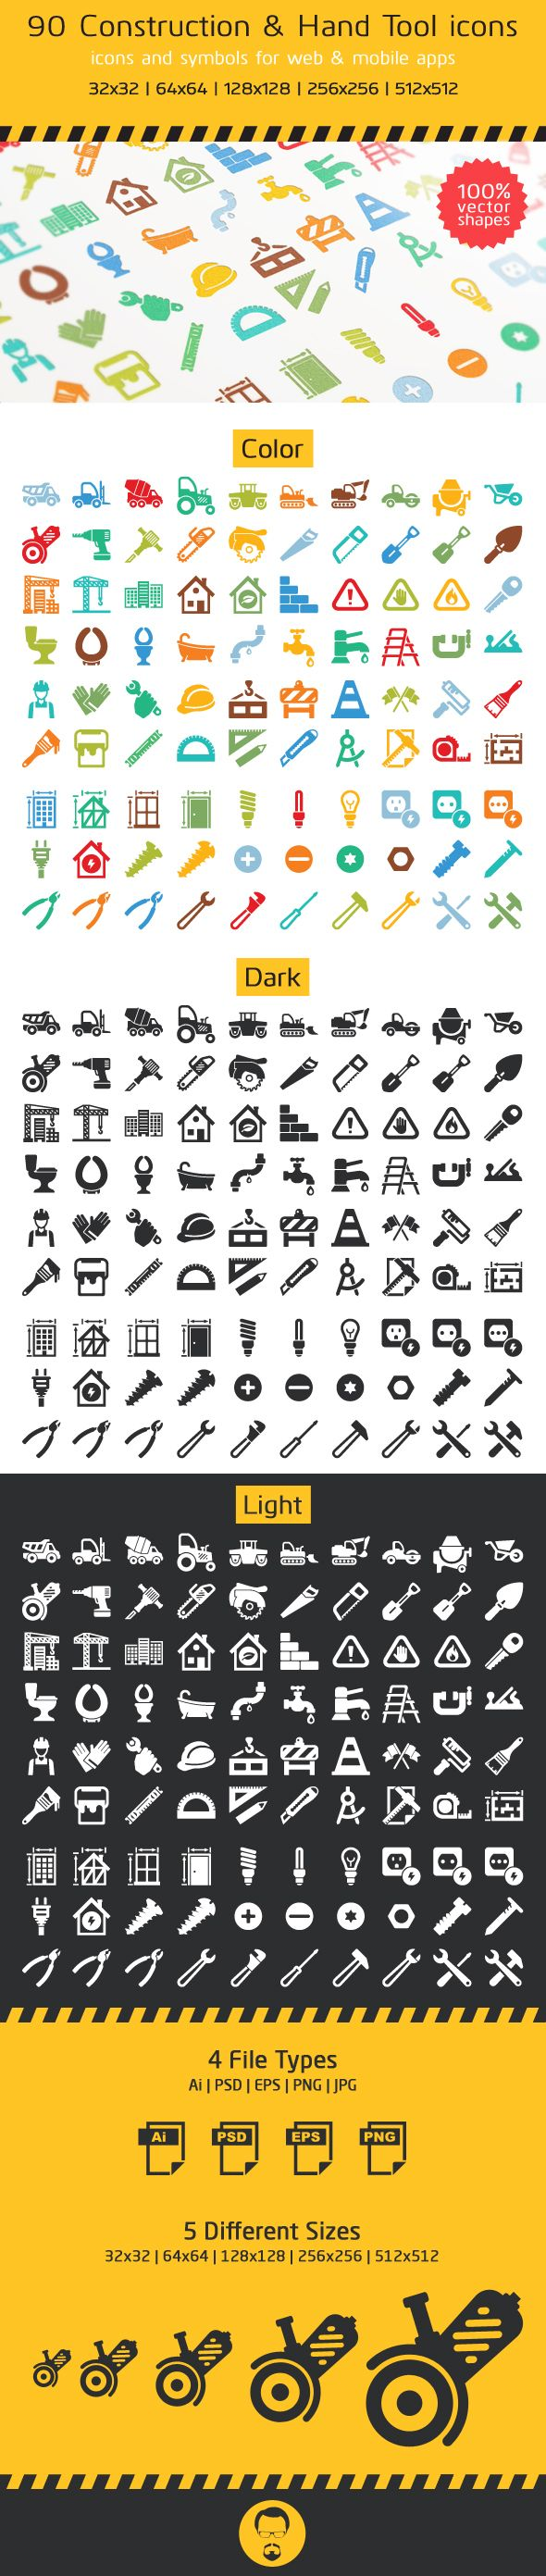 90 Construction and Hand Tool Icons by Ottoson , via Behance